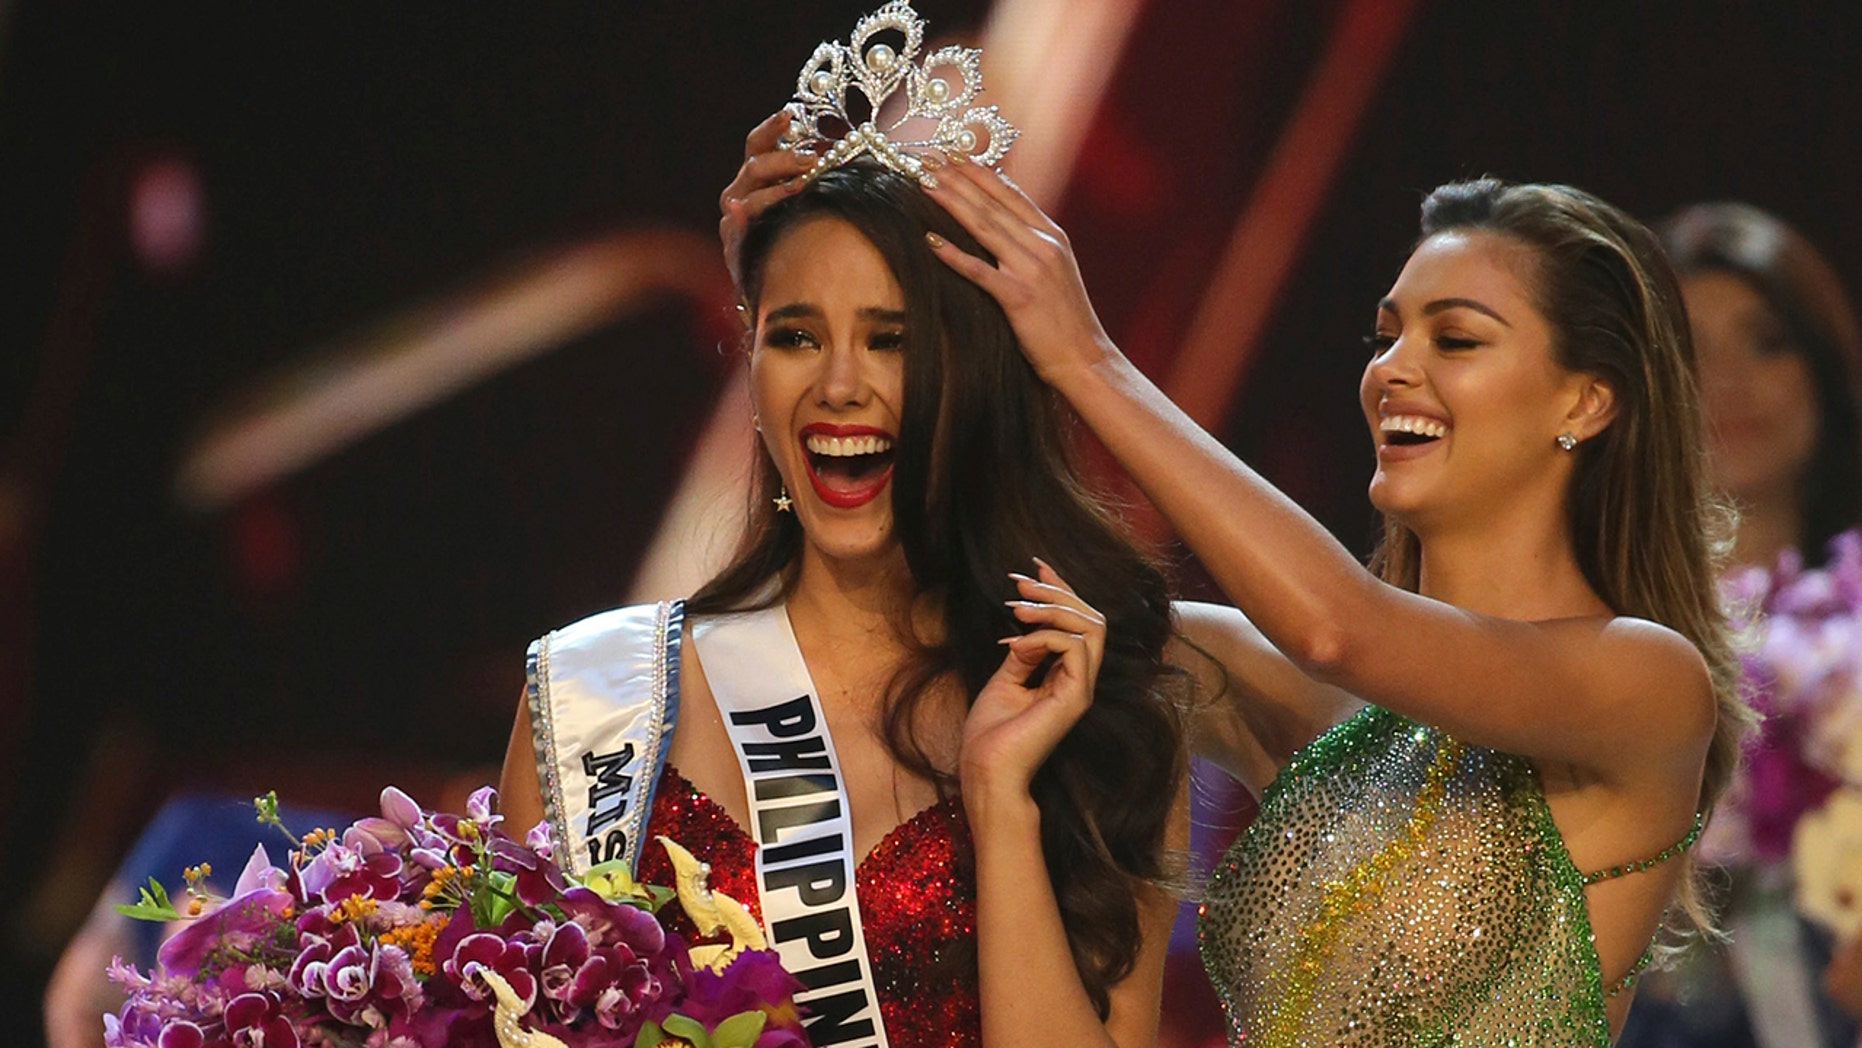 Catriona Gray makes it to top 3 of Miss Universe 2018